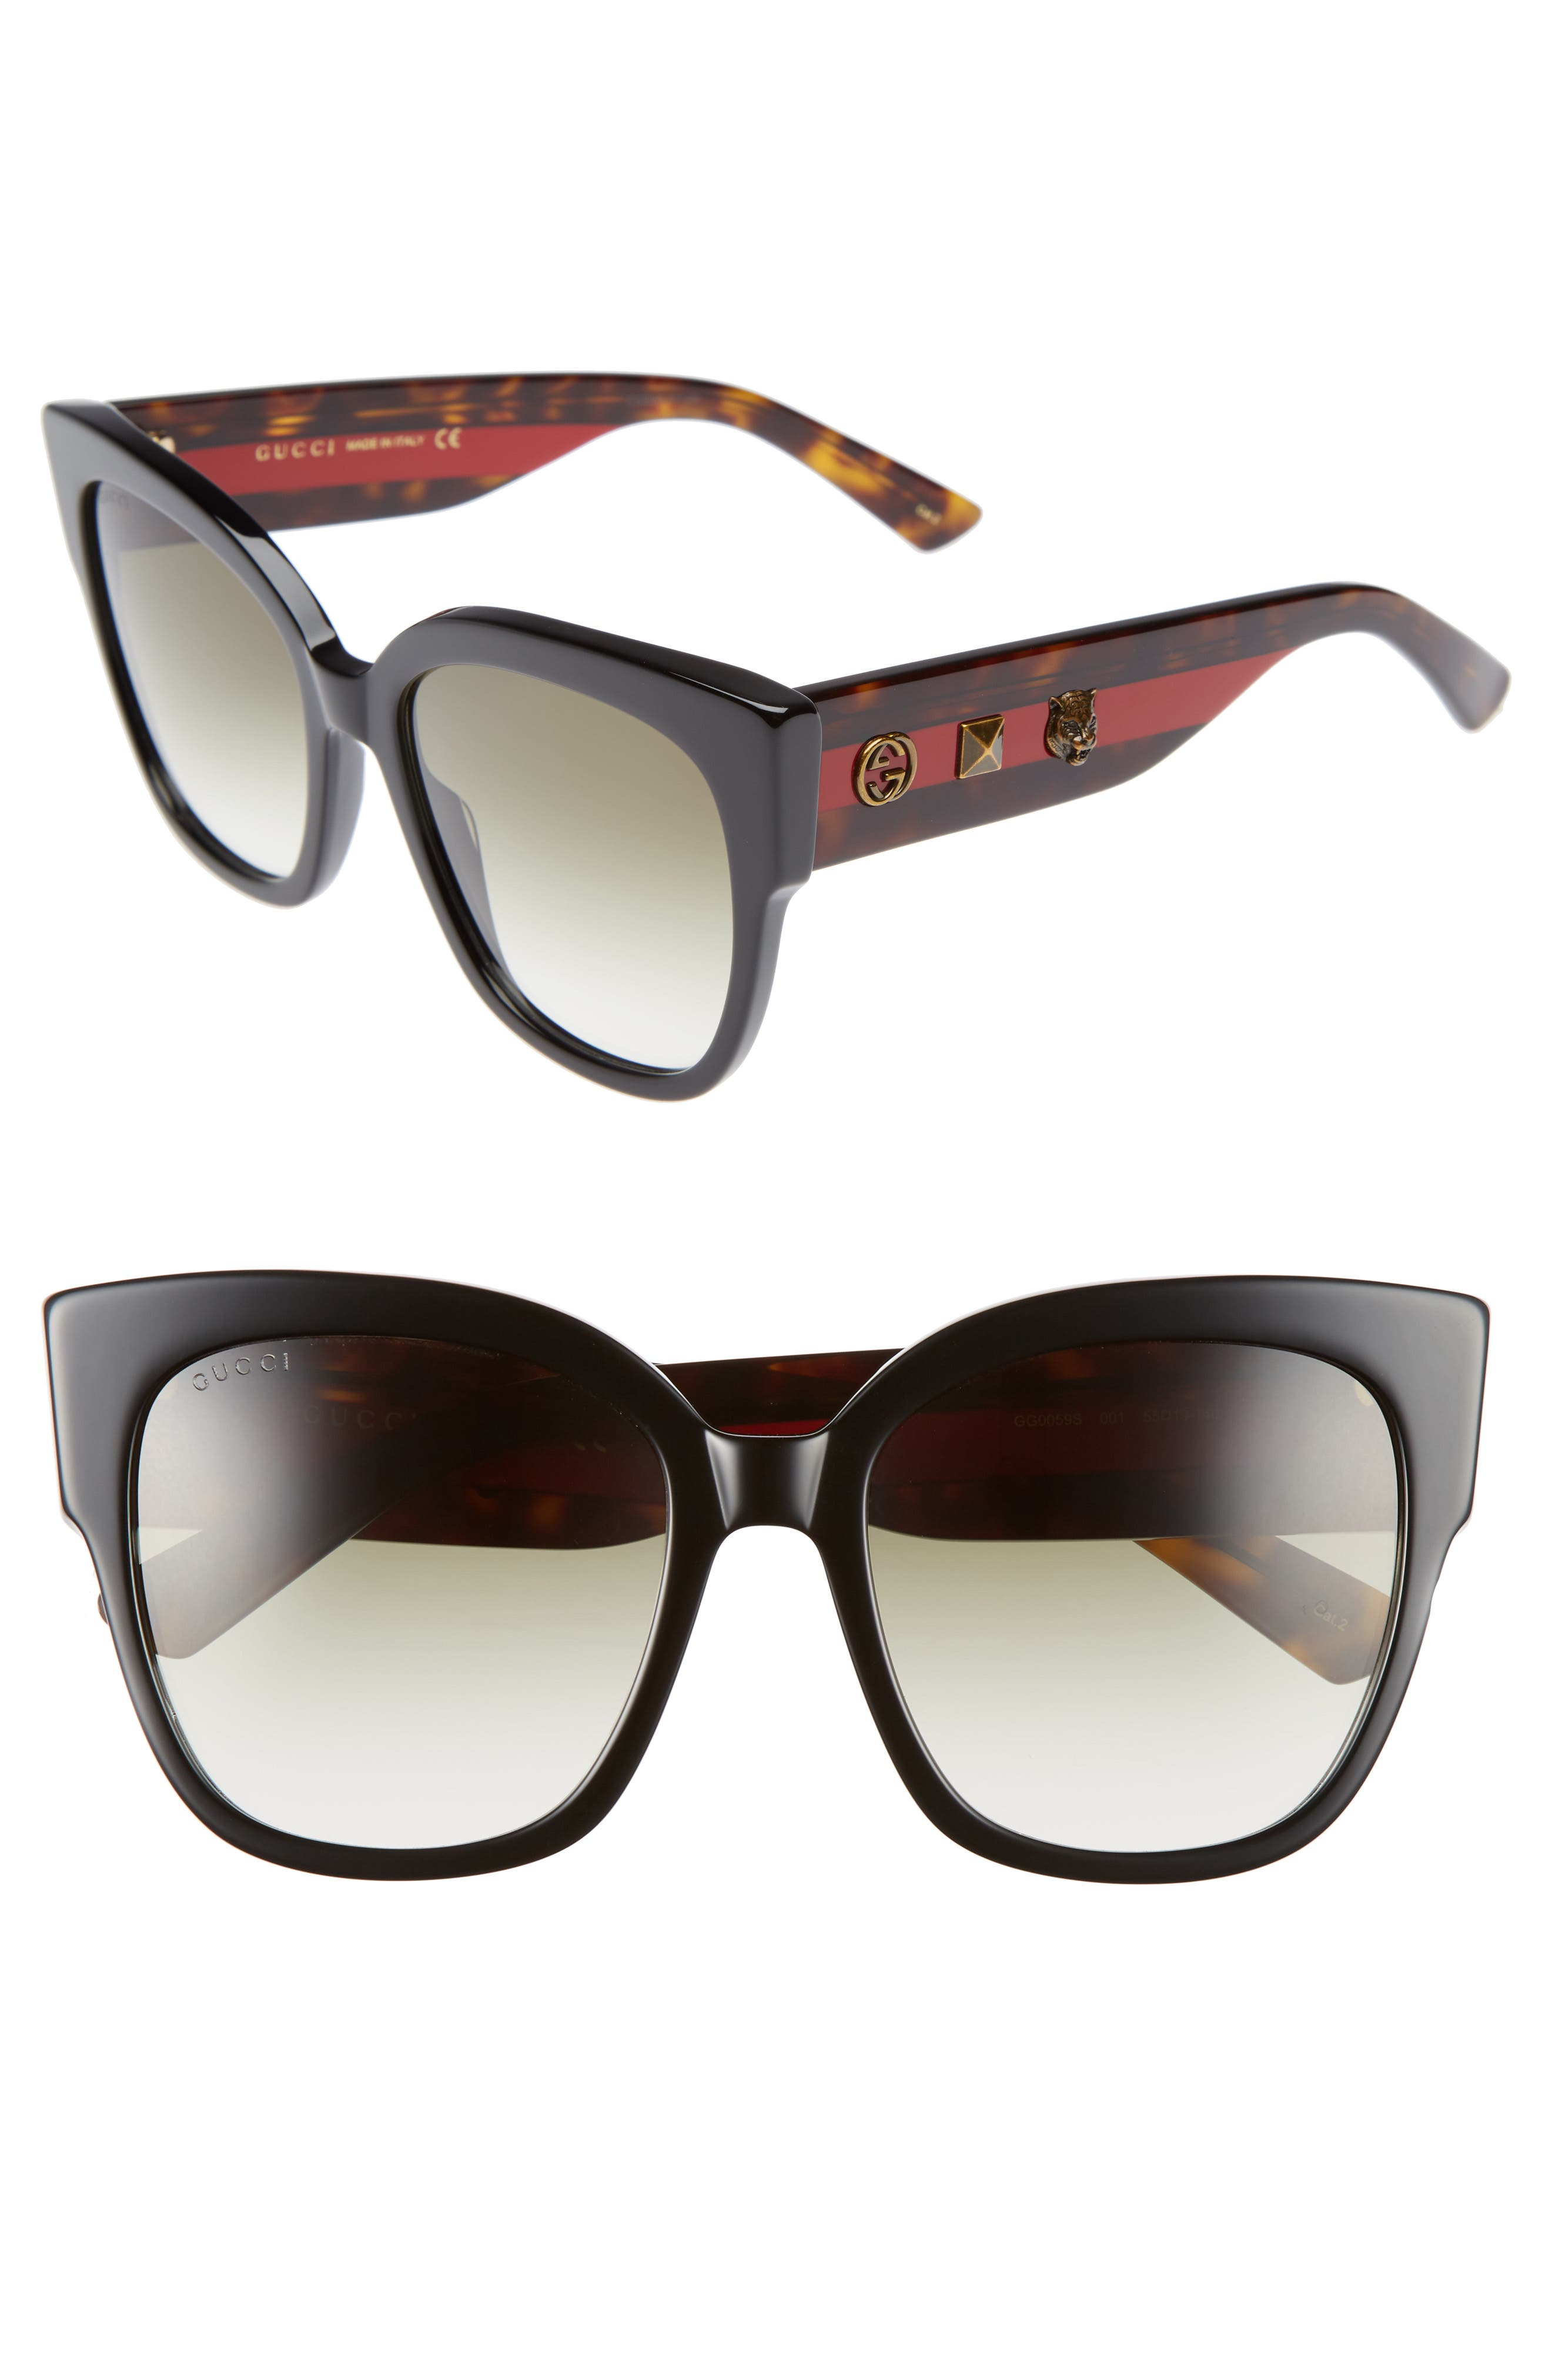 55mm Butterfly Sunglasses,                         Main,                         color, 001